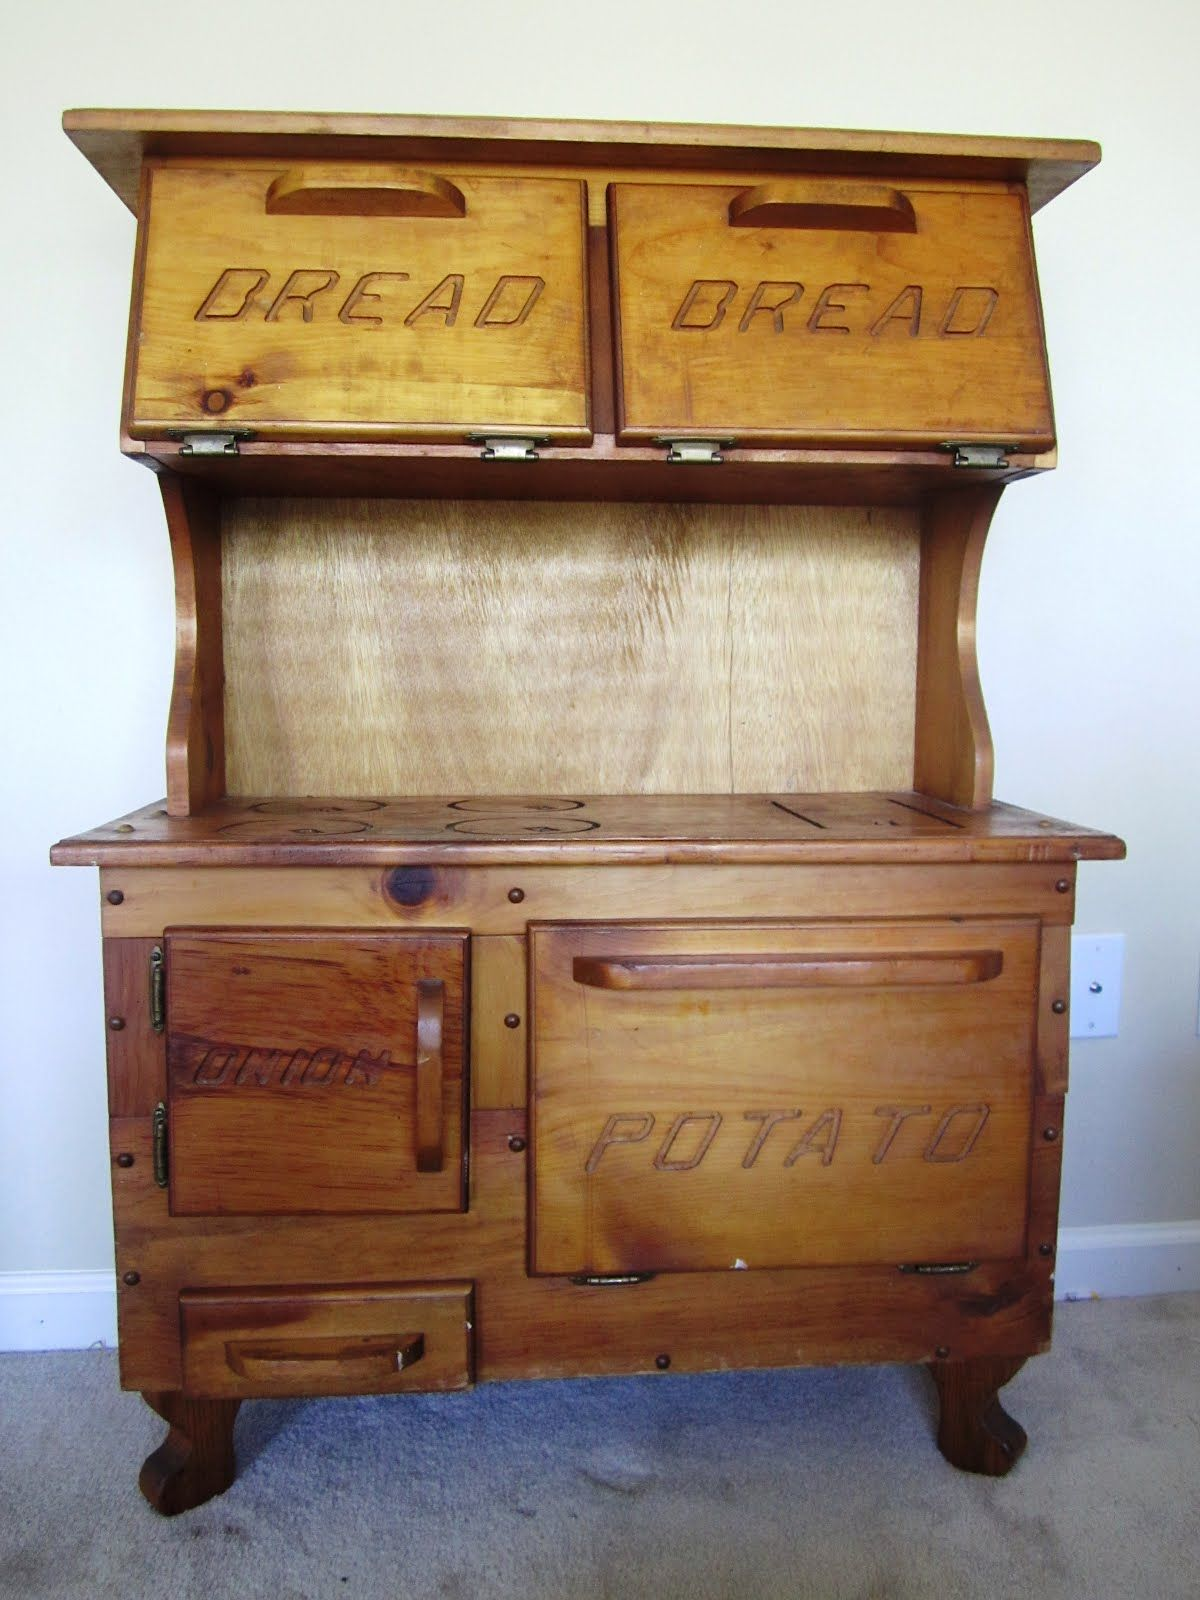 A Bread Drawer Really I Could Hug This Person Bread Drawer Best Kitchen Designs Kitchen Design